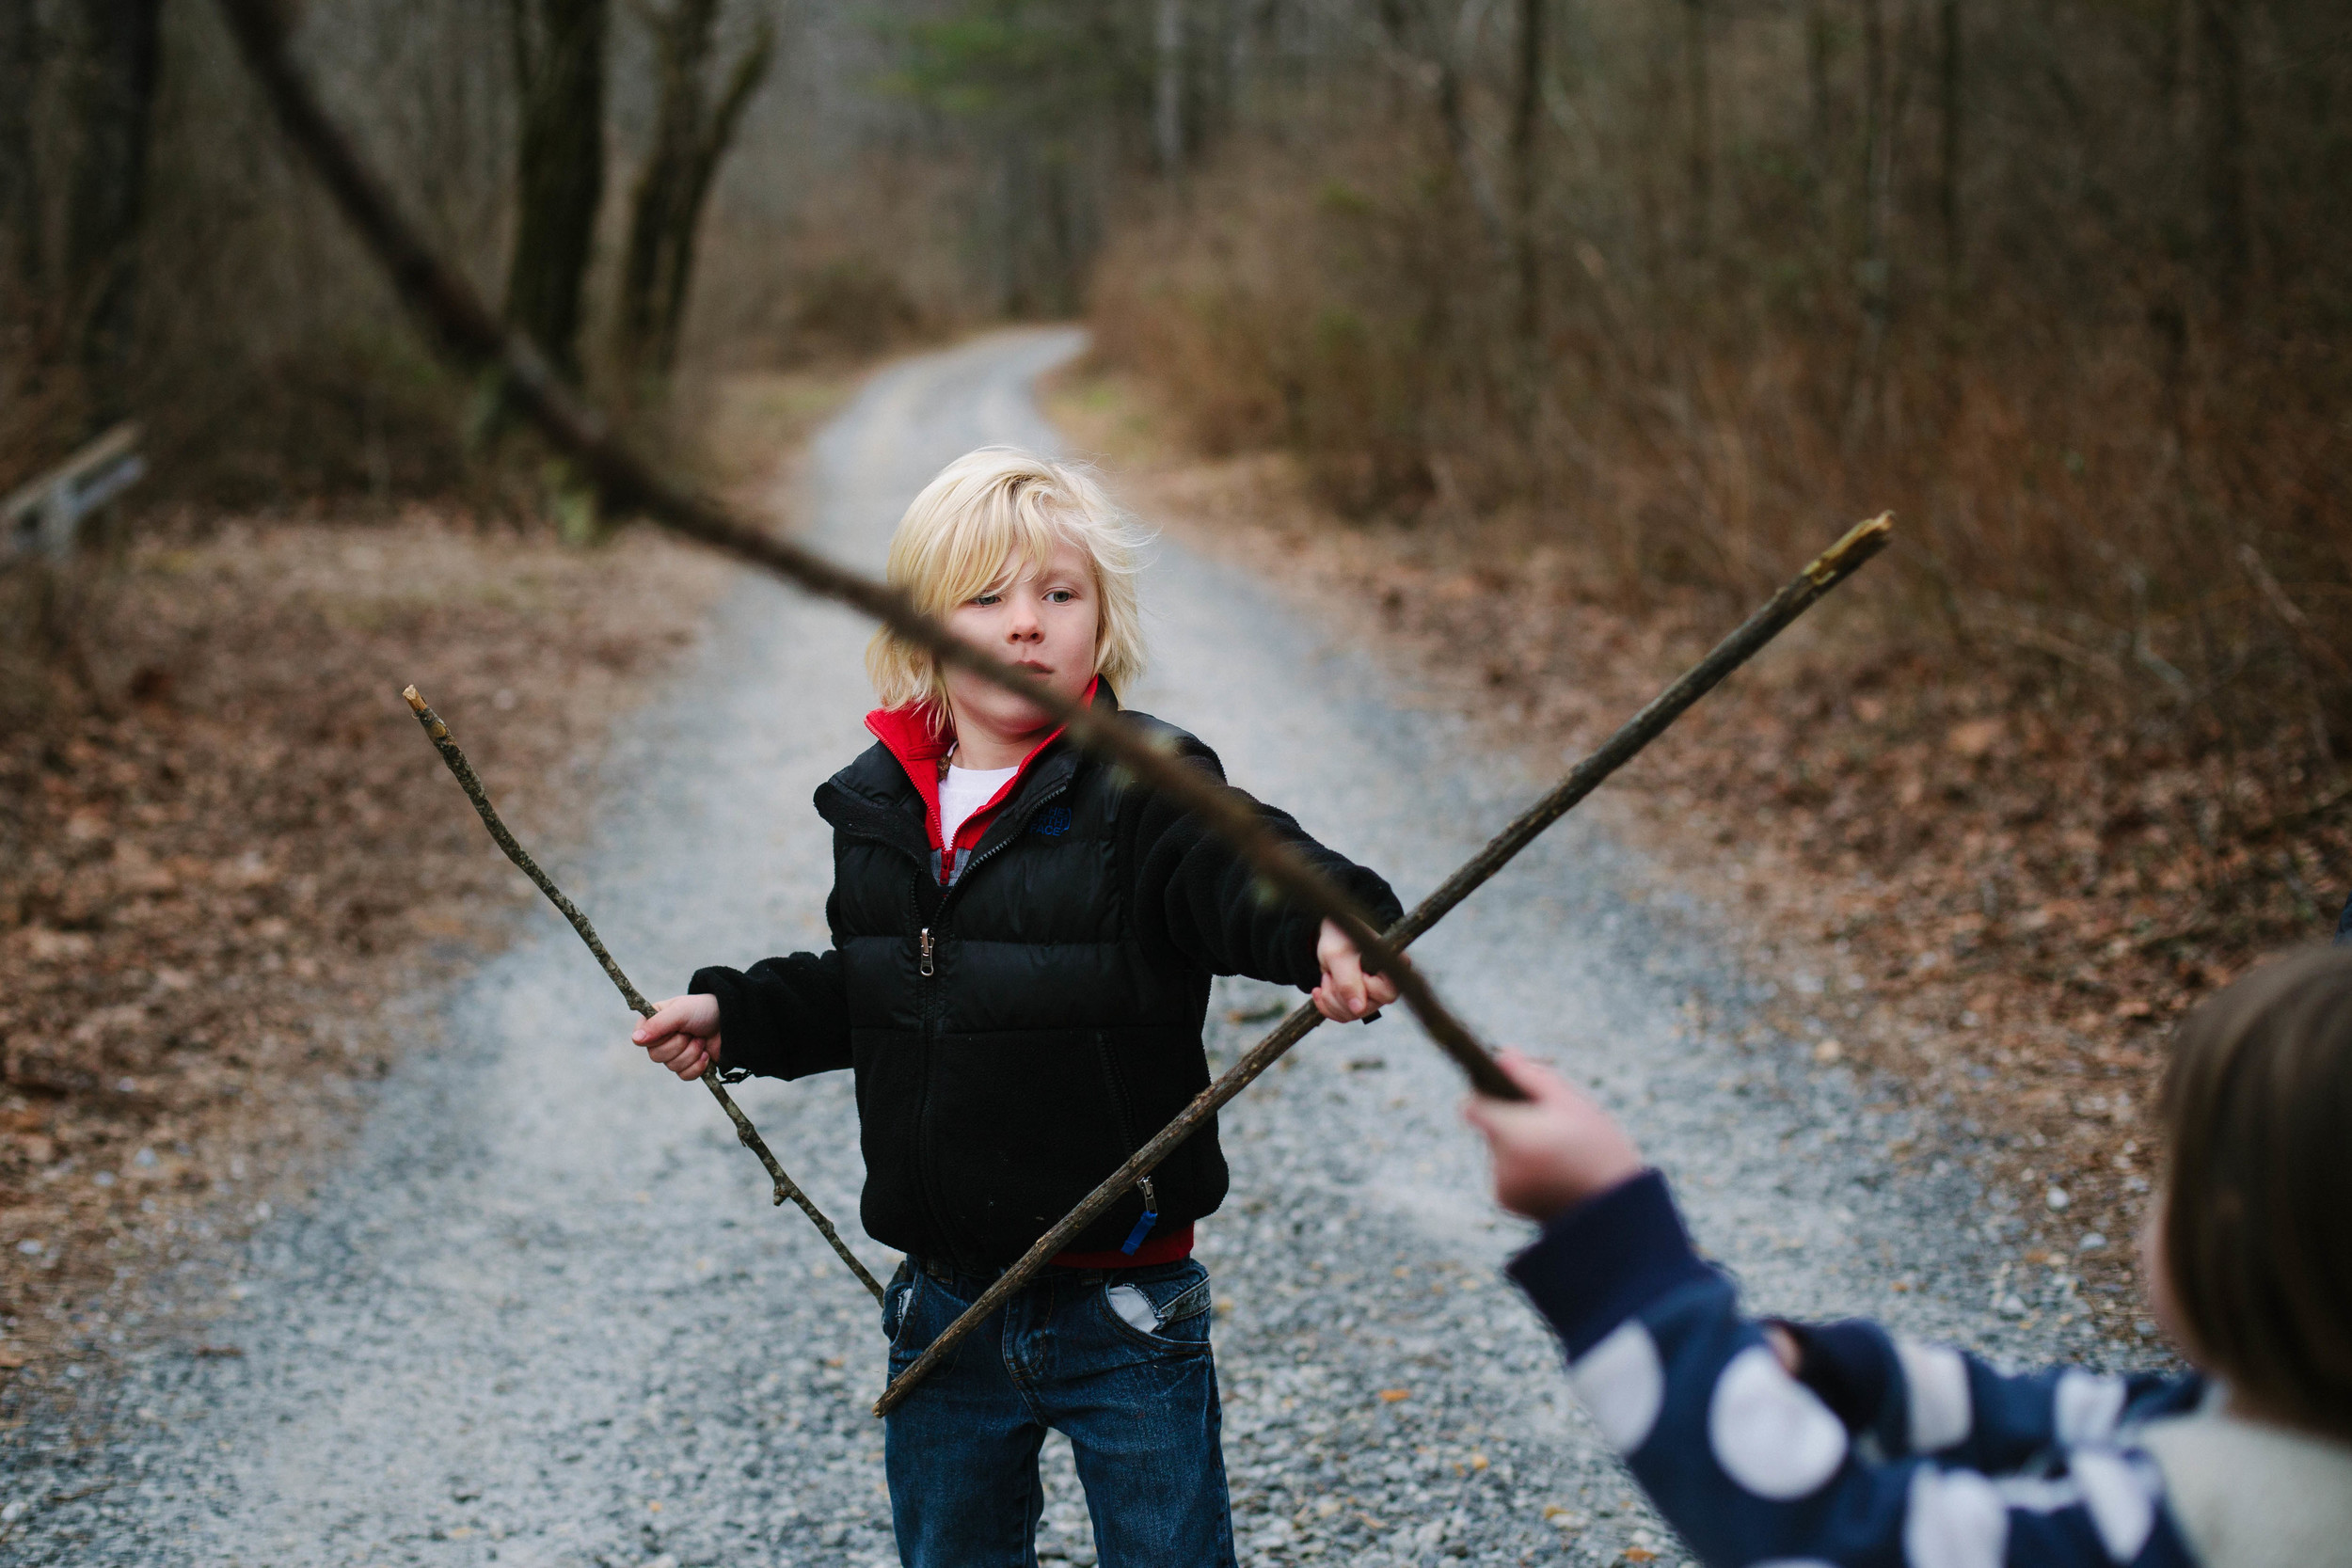 Image of boy and girl play sword fighting with sticks on gravel road in forest